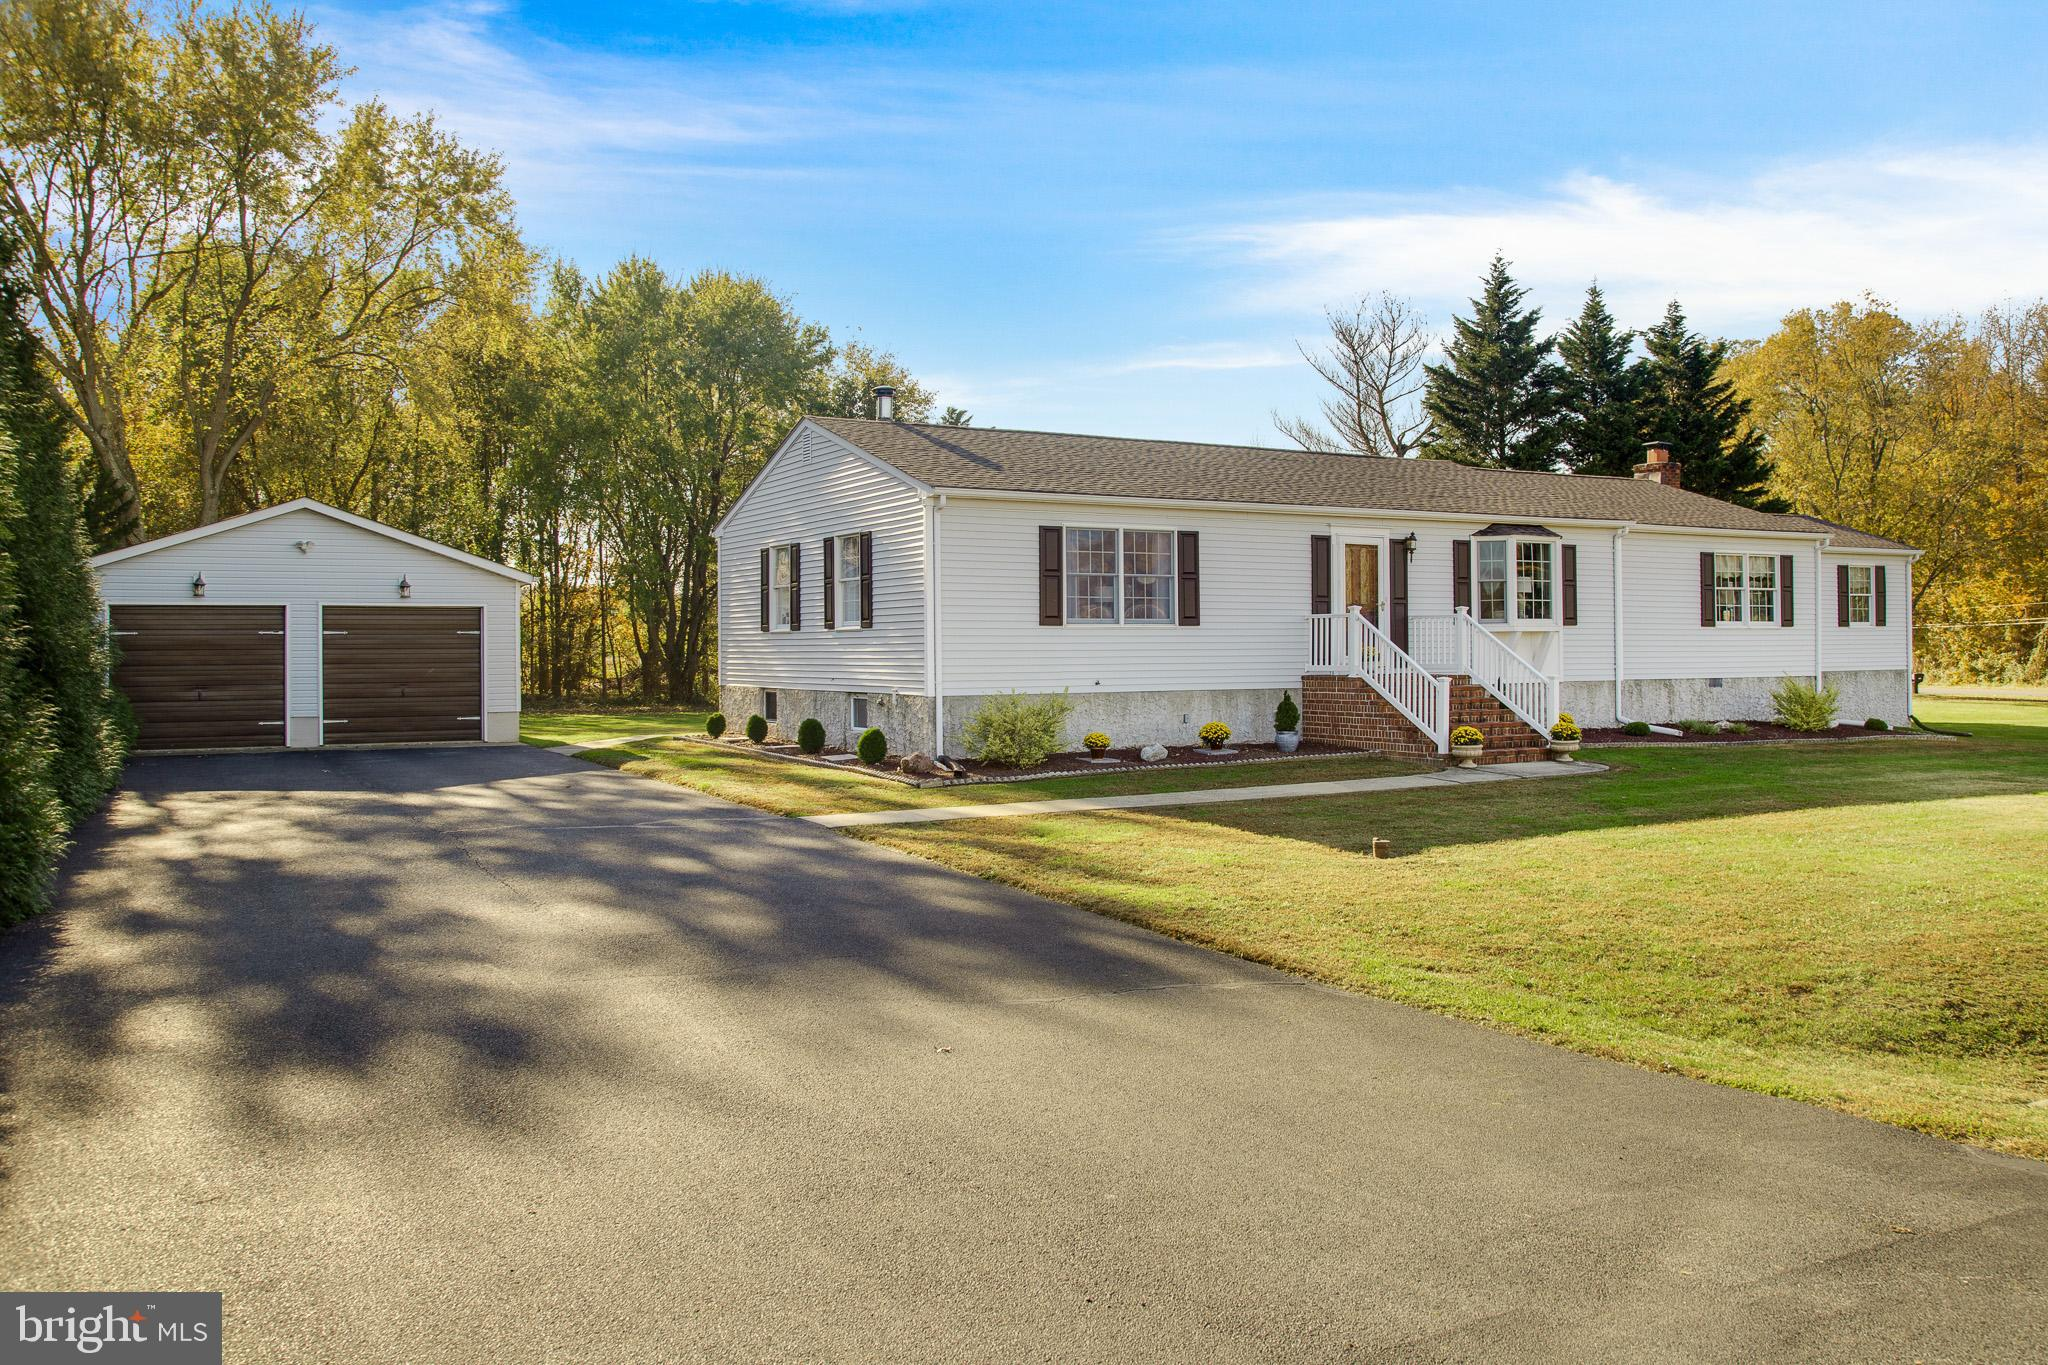 This Pristine Ranch is a must see if you are looking for a move-in ready home. You will like the amazing curb appeal and views of Country living. Located just outside of Middletown. This house is just minutes away from all major highways and local shopping areas. Entering the home you will see how meticulously kept it is. The Hardwood floors throughout are easy to clean and maintain. The bright natural light throughout the house provides energy as you tour the property. There are 4 bedrooms and 2 1/2 baths. This house is great for entertaining Family and Friends in the Large Family Room. Open up the French doors and spill the party out to the screened in porch area. There is a great breeze that flows through the house when that is opened up. The Super Large Main bedroom is fabulous, featuring a large bathroom with a walk in shower. This room was once used (and can be used) as an in Law Suite, for aging parents, visitors suite and was rented out to college students at on time. The basement area is clean as a whistle and provides plenty of room for storage, and the Bilco doors provide easy access to move things in and out.  Step outside and enjoy the large yard to relax and/or entertain as well. Finally a 31x24 Detached Garage which is great for Car enthusiast or a place for a workshop. Many updates were done, such as New Roofs (2014), New Furnace (2018), New Water Heater (2018), New Central Air (2019) and Class H done (2020). This well-built house is waiting for its new owners who will appreciate what this house has to offer and there is much more to see when you visit this lovely home.